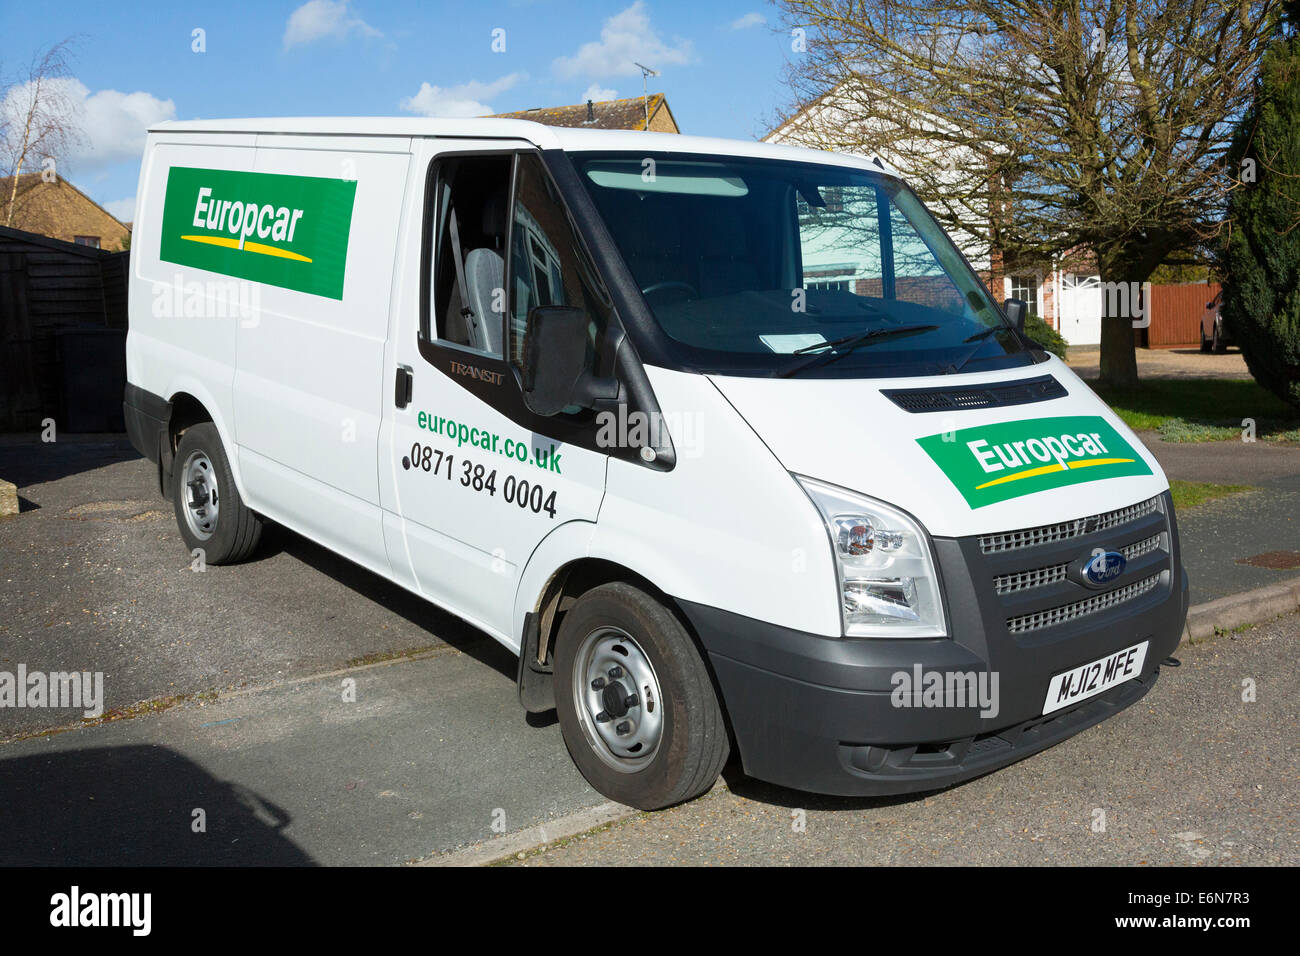 Self Drive Hire Van From Europcar Uk Stock Photo 72996535 Alamy